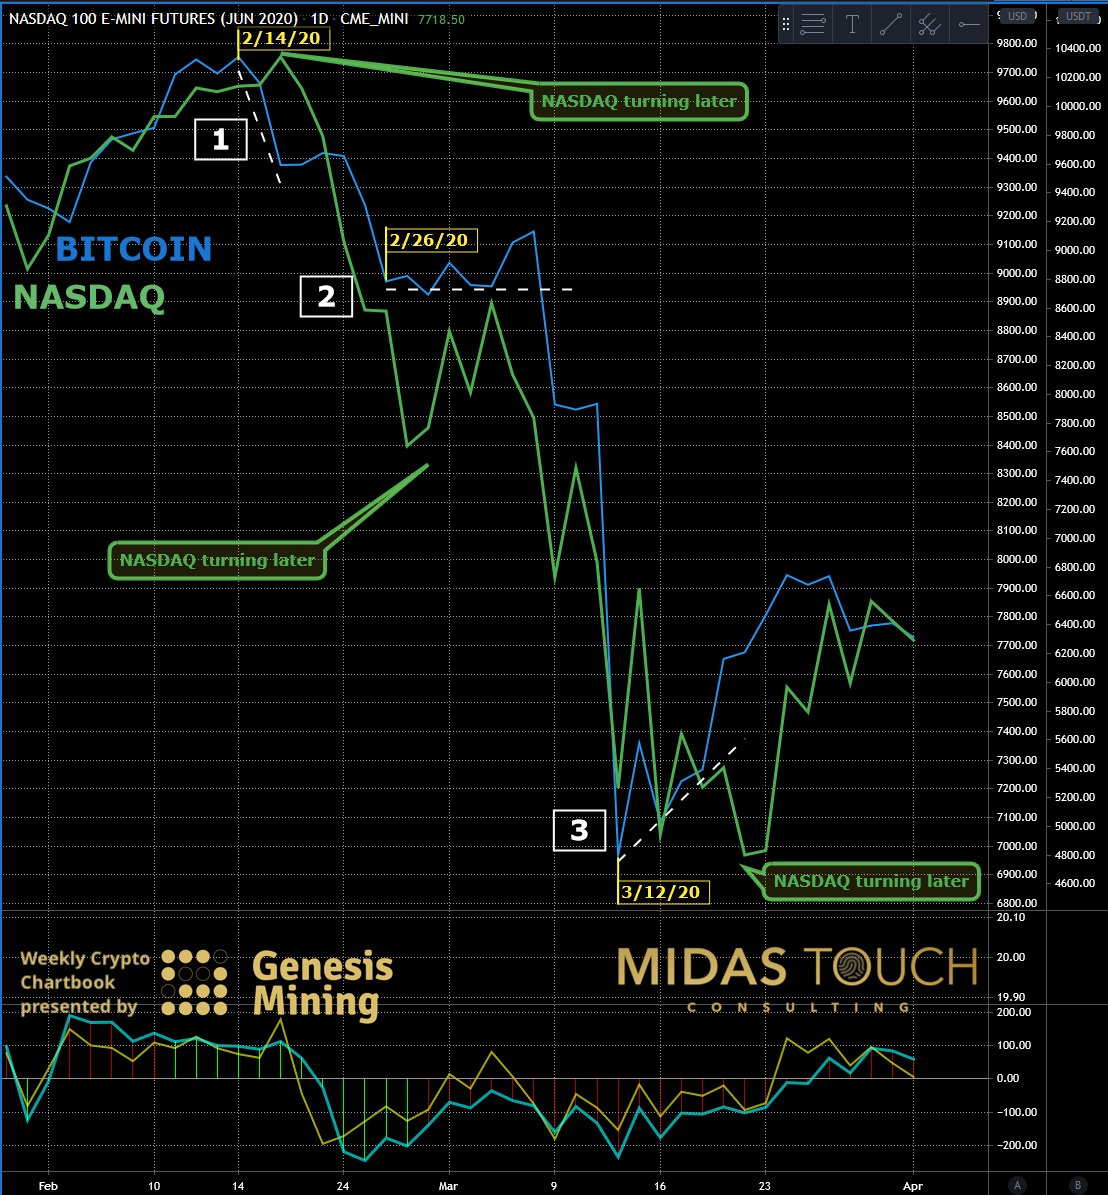 NASDAQ 100 futures versus BTC daily chart as of April 1st, 2020